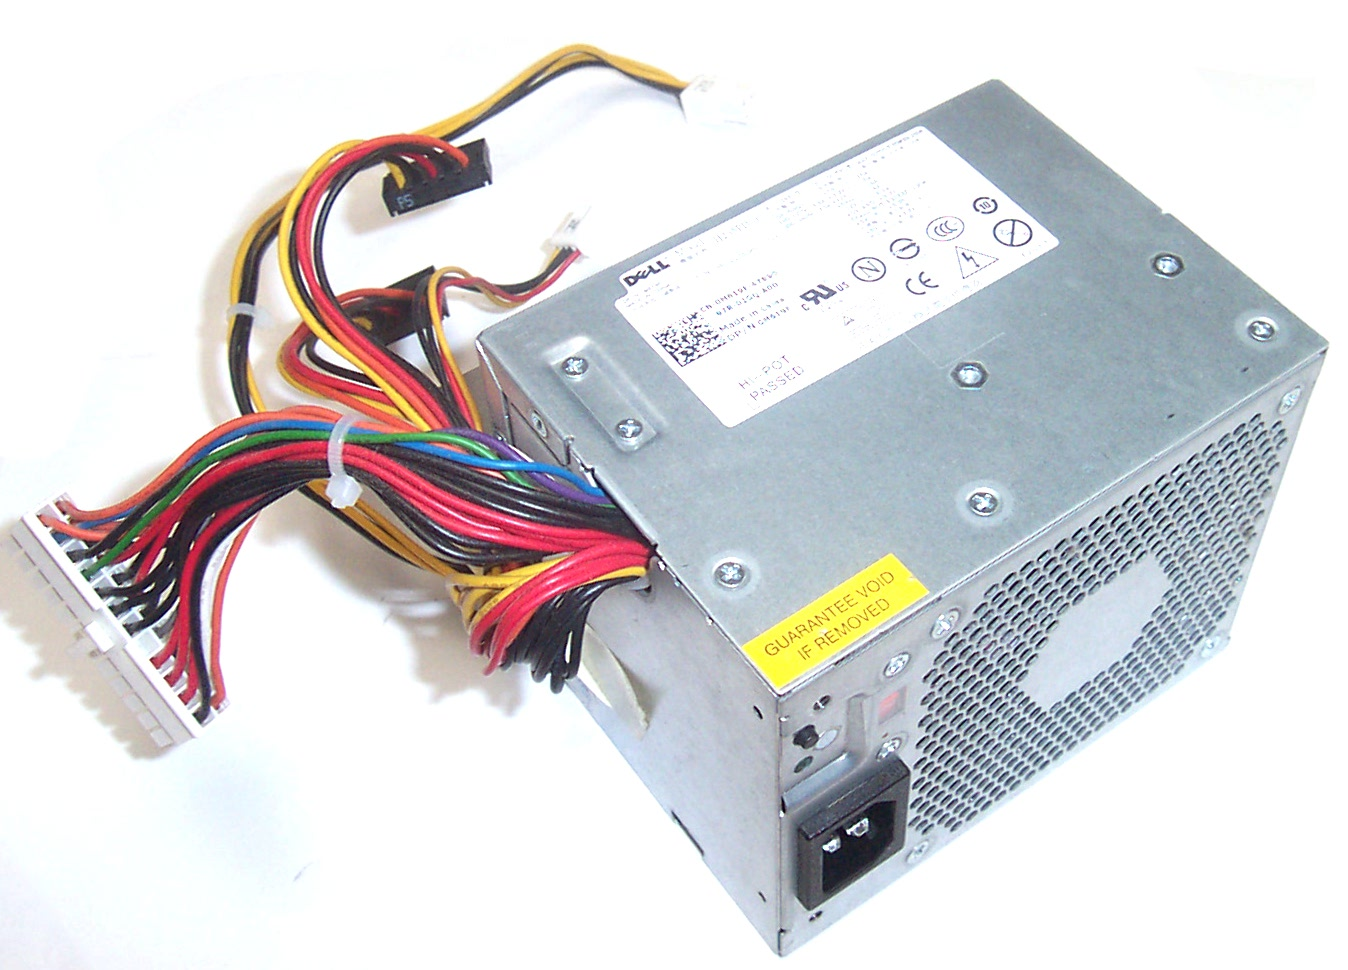 Dell M619F 235W OptiPlex 360 (model DCNE) Power Supply - H235PD-01